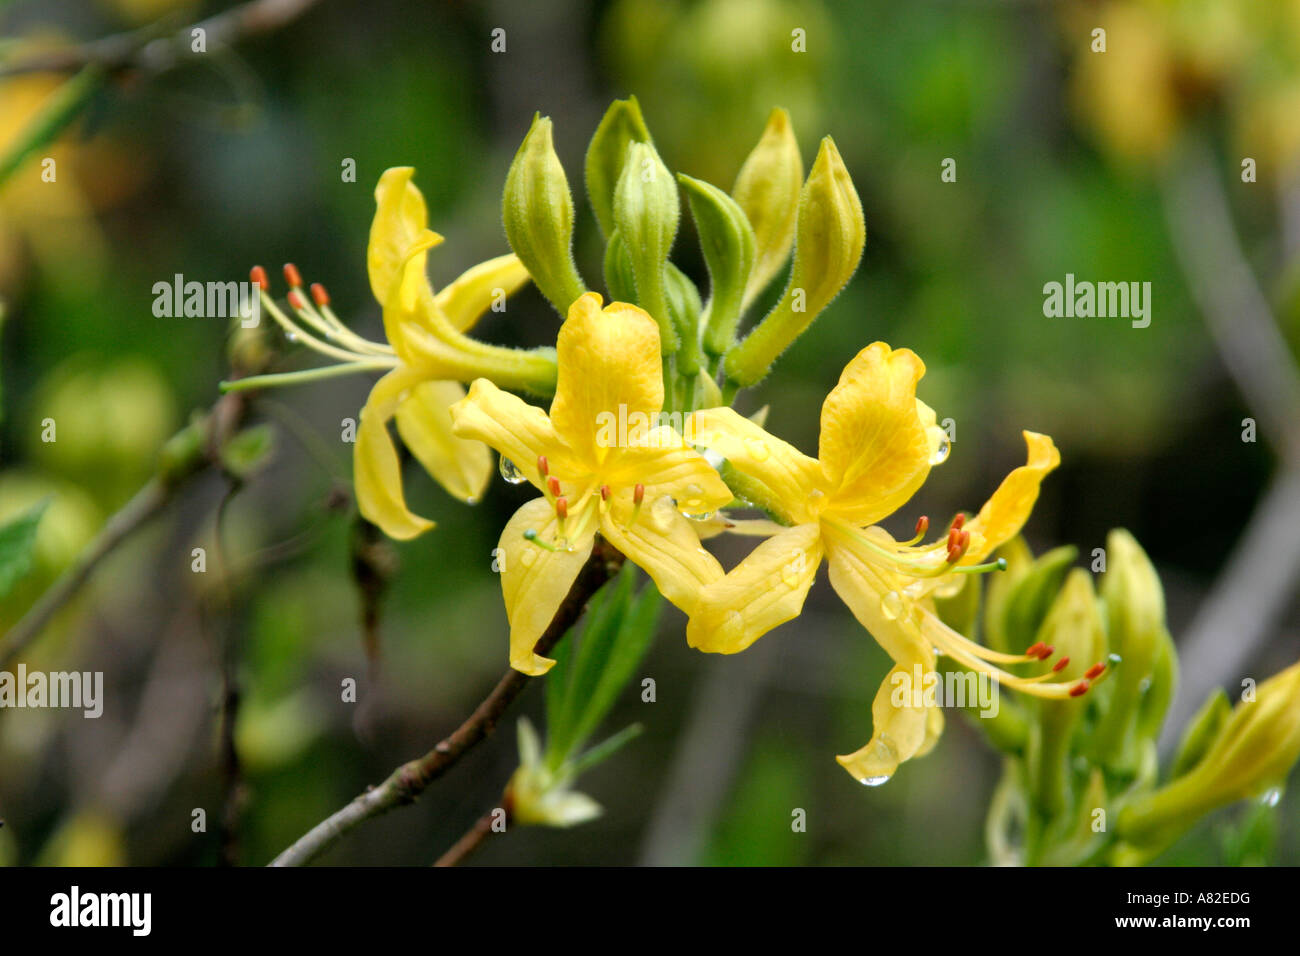 Rhododendron luteum in Holbrook Garden - Stock Image